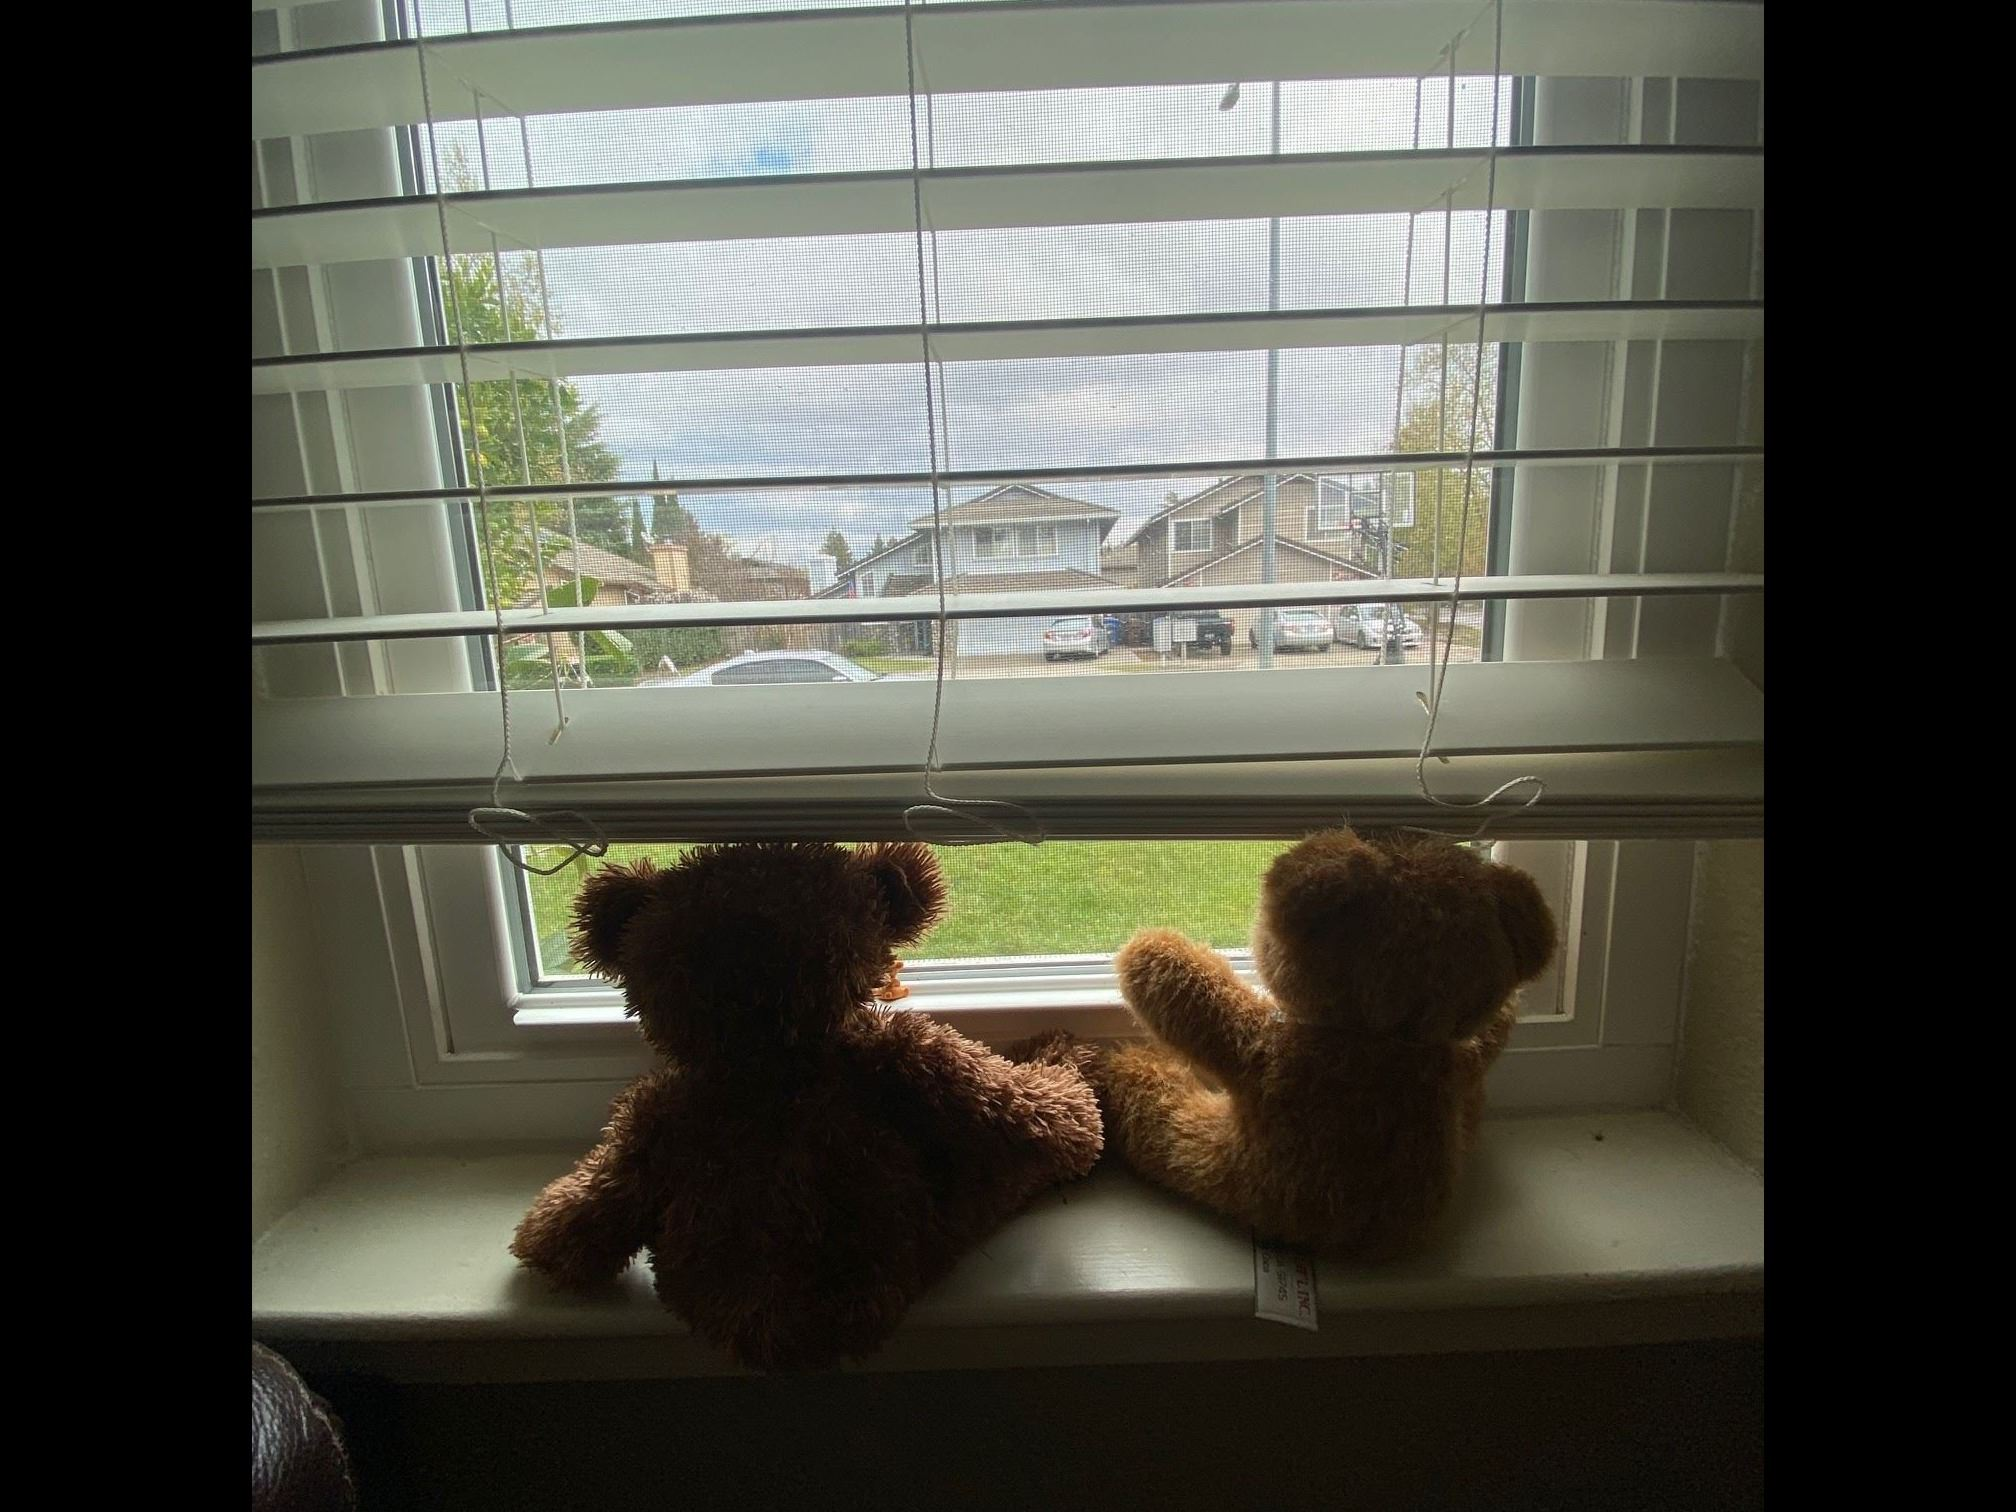 Two stuffed bears sitting in a window facing the front of a home.